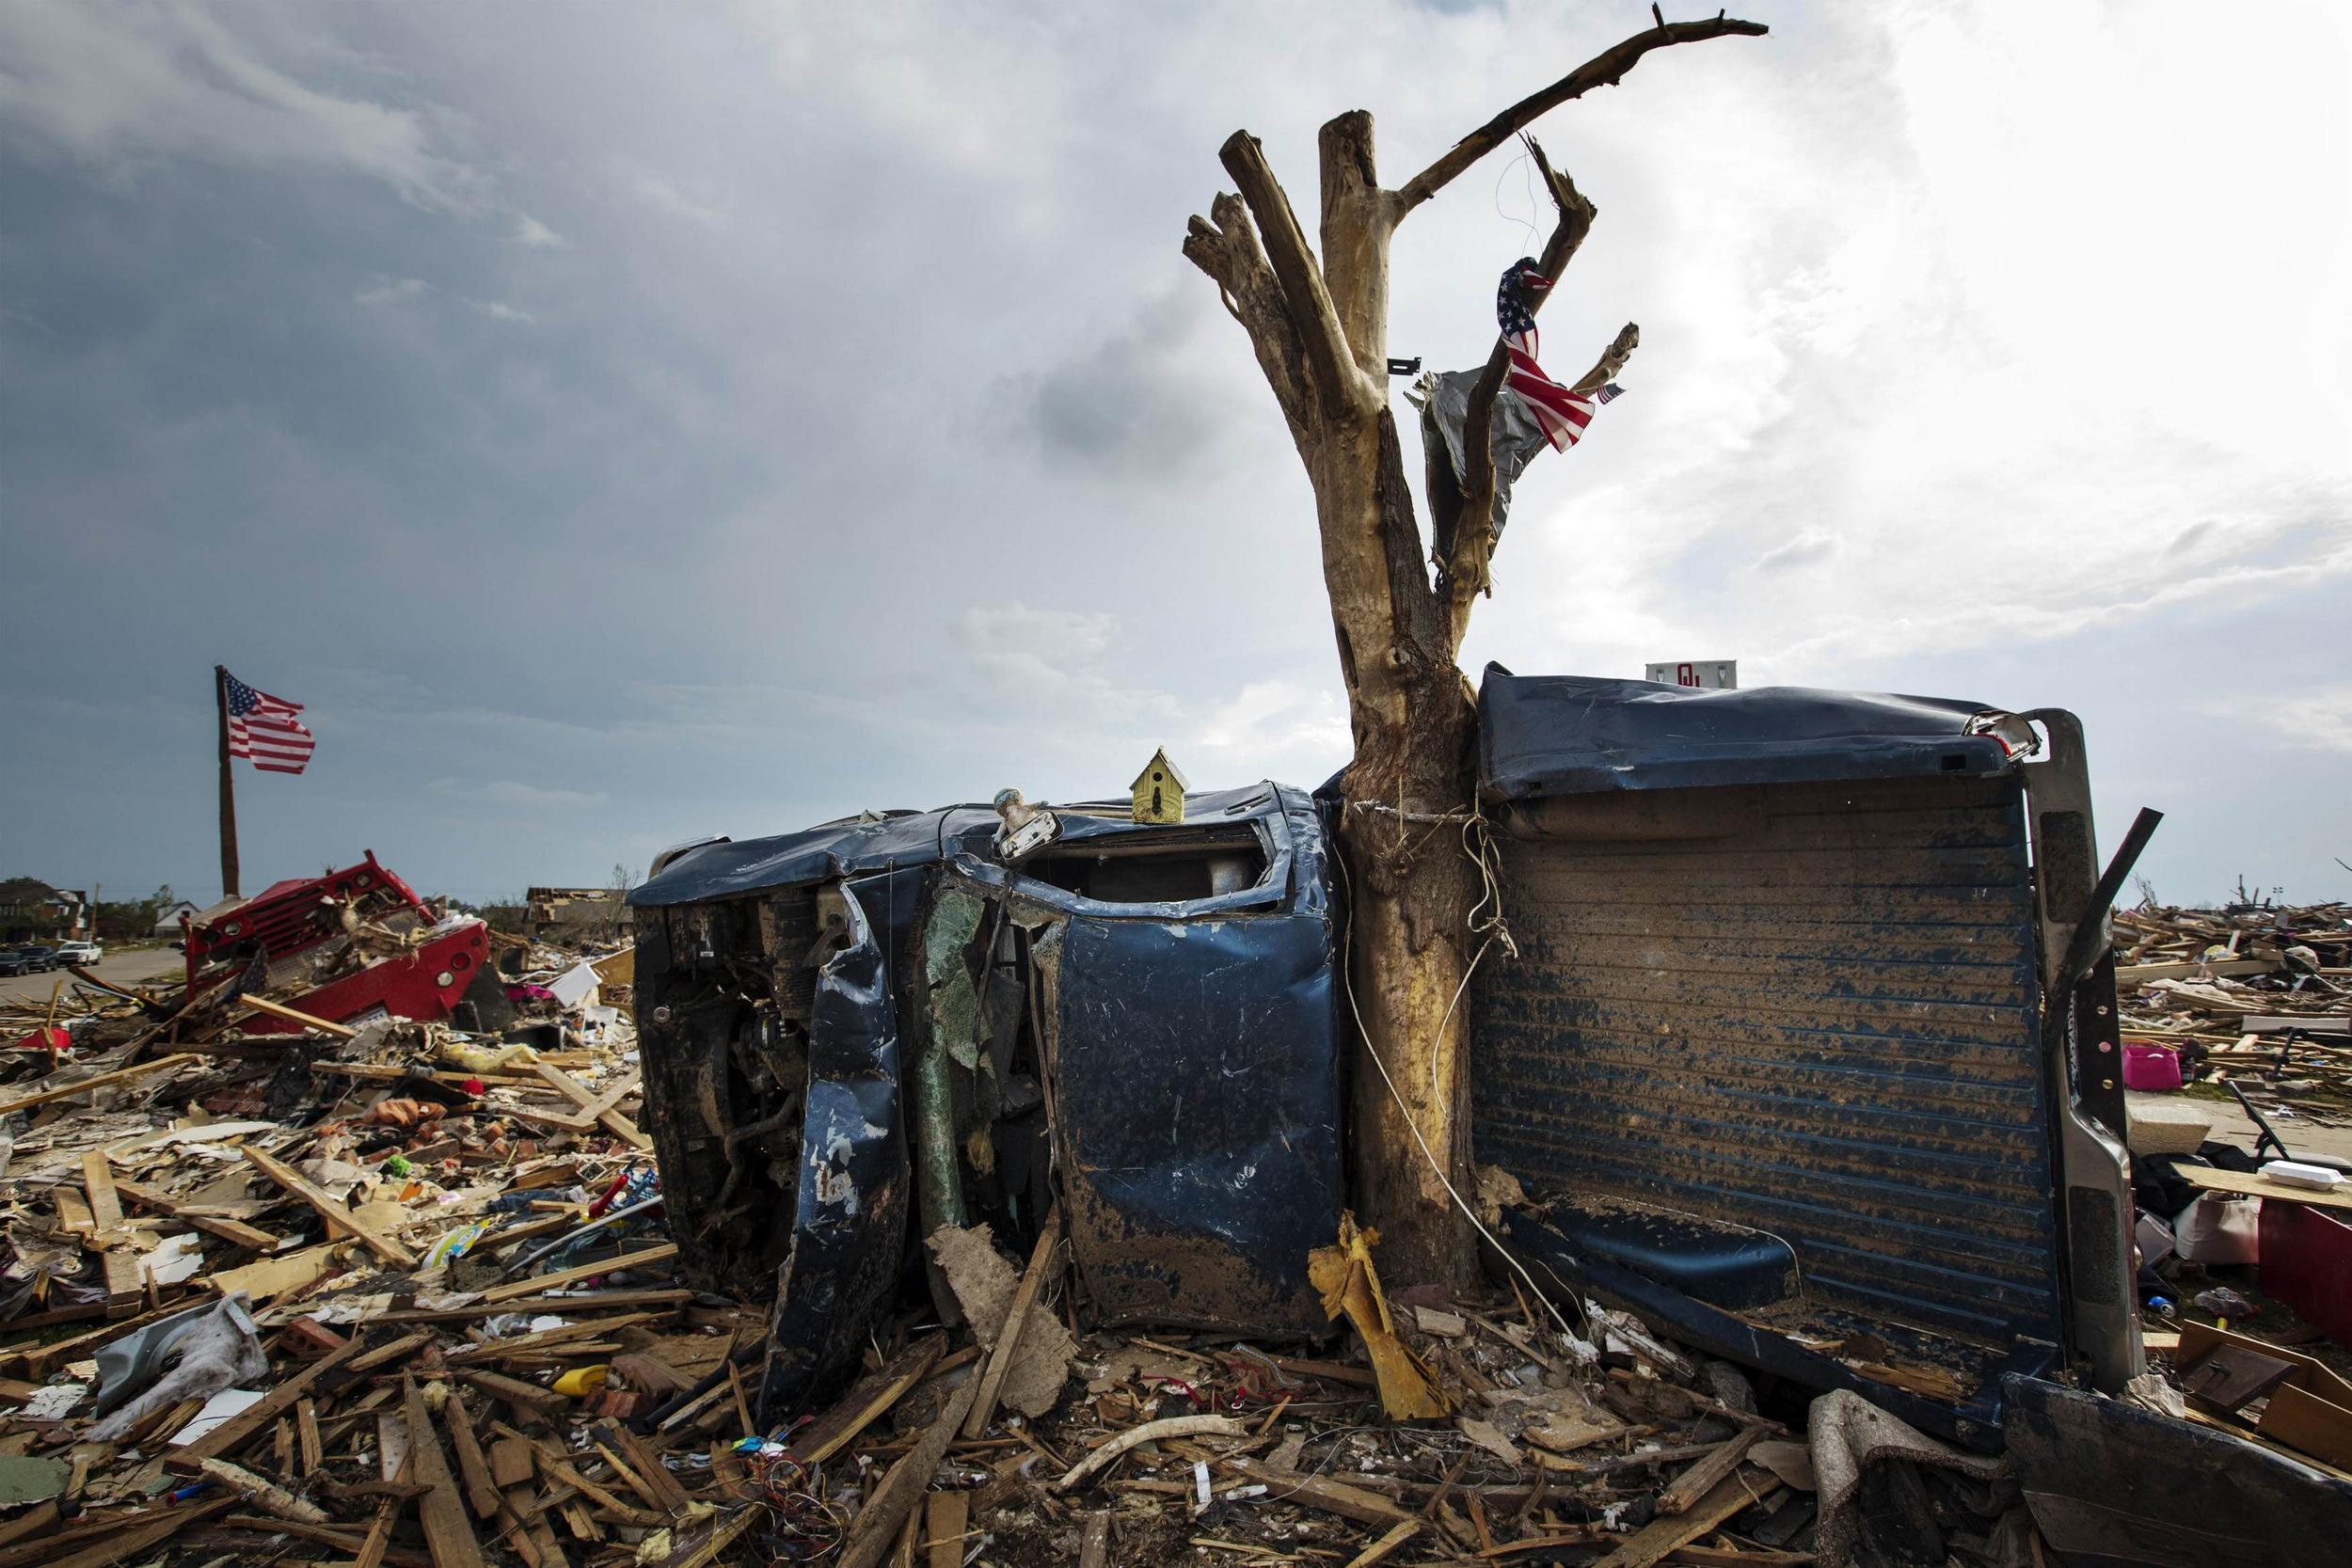 Image: The body of a pickup truck is wrapped around a tree trunk after being thrown there by by a tornado in Moore, Oklahoma in this file photo